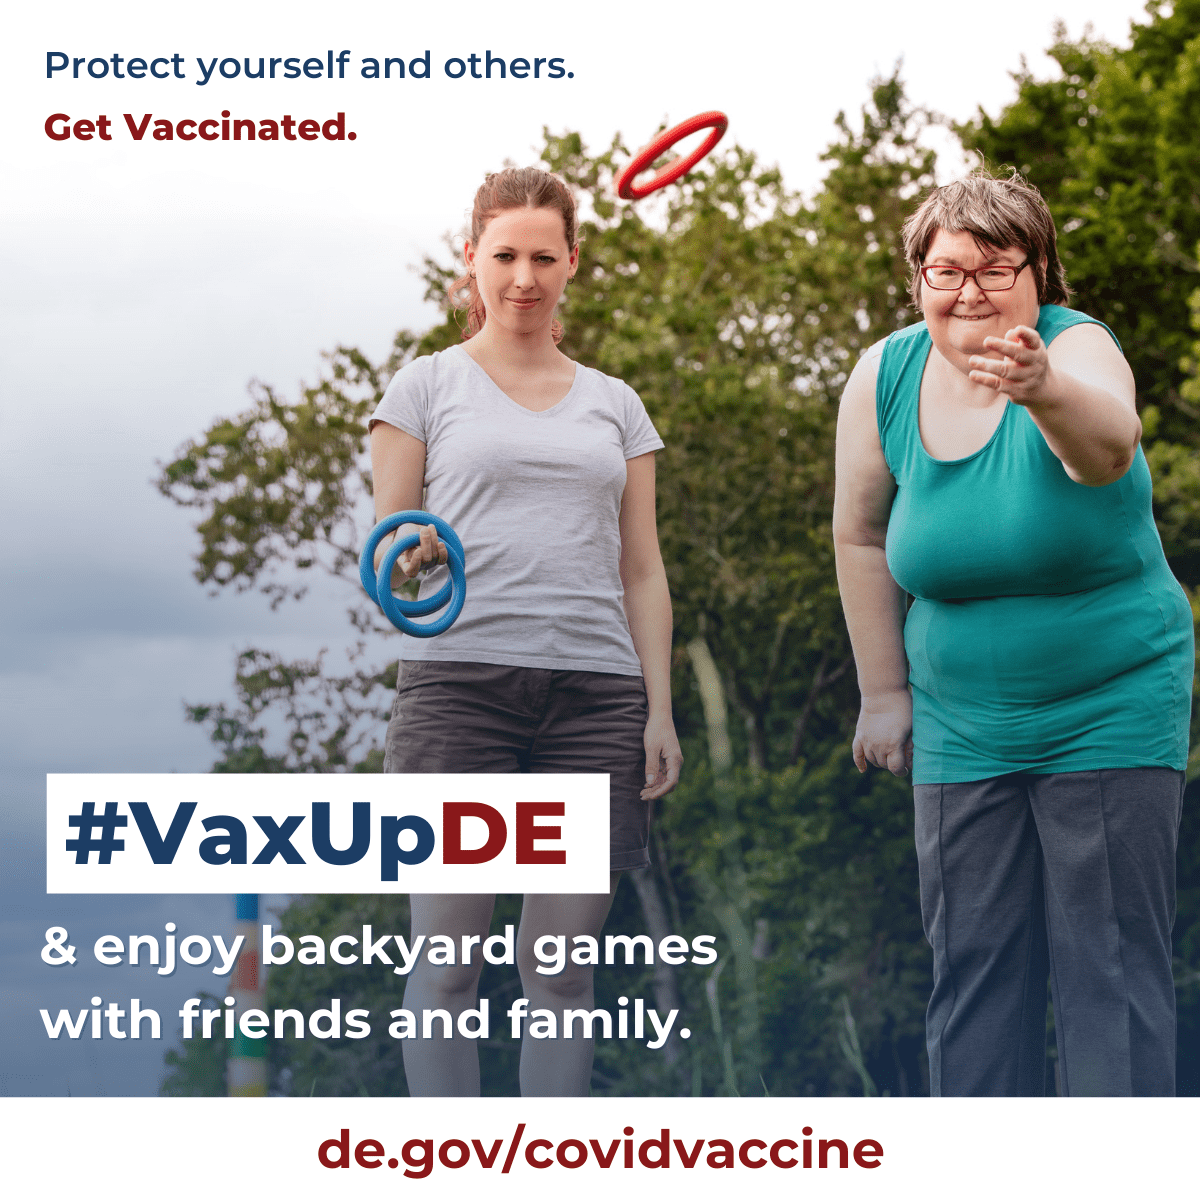 VaxUpDE Protect yourself and others. Get vaccinated.Mother and daughter play ring toss outside.